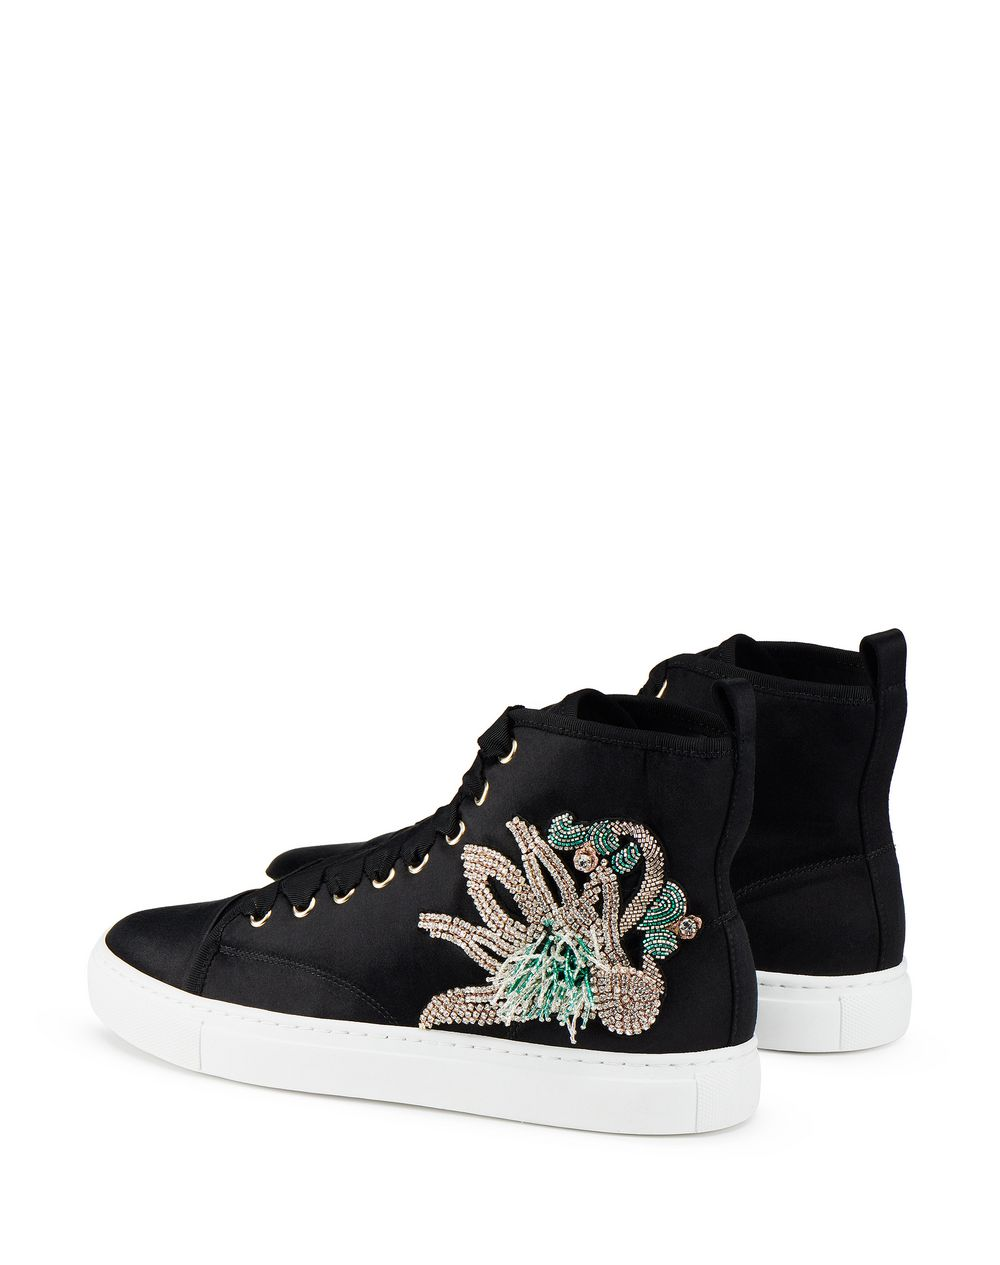 EMBROIDERED SATIN HIGH-TOP SNEAKER - Lanvin